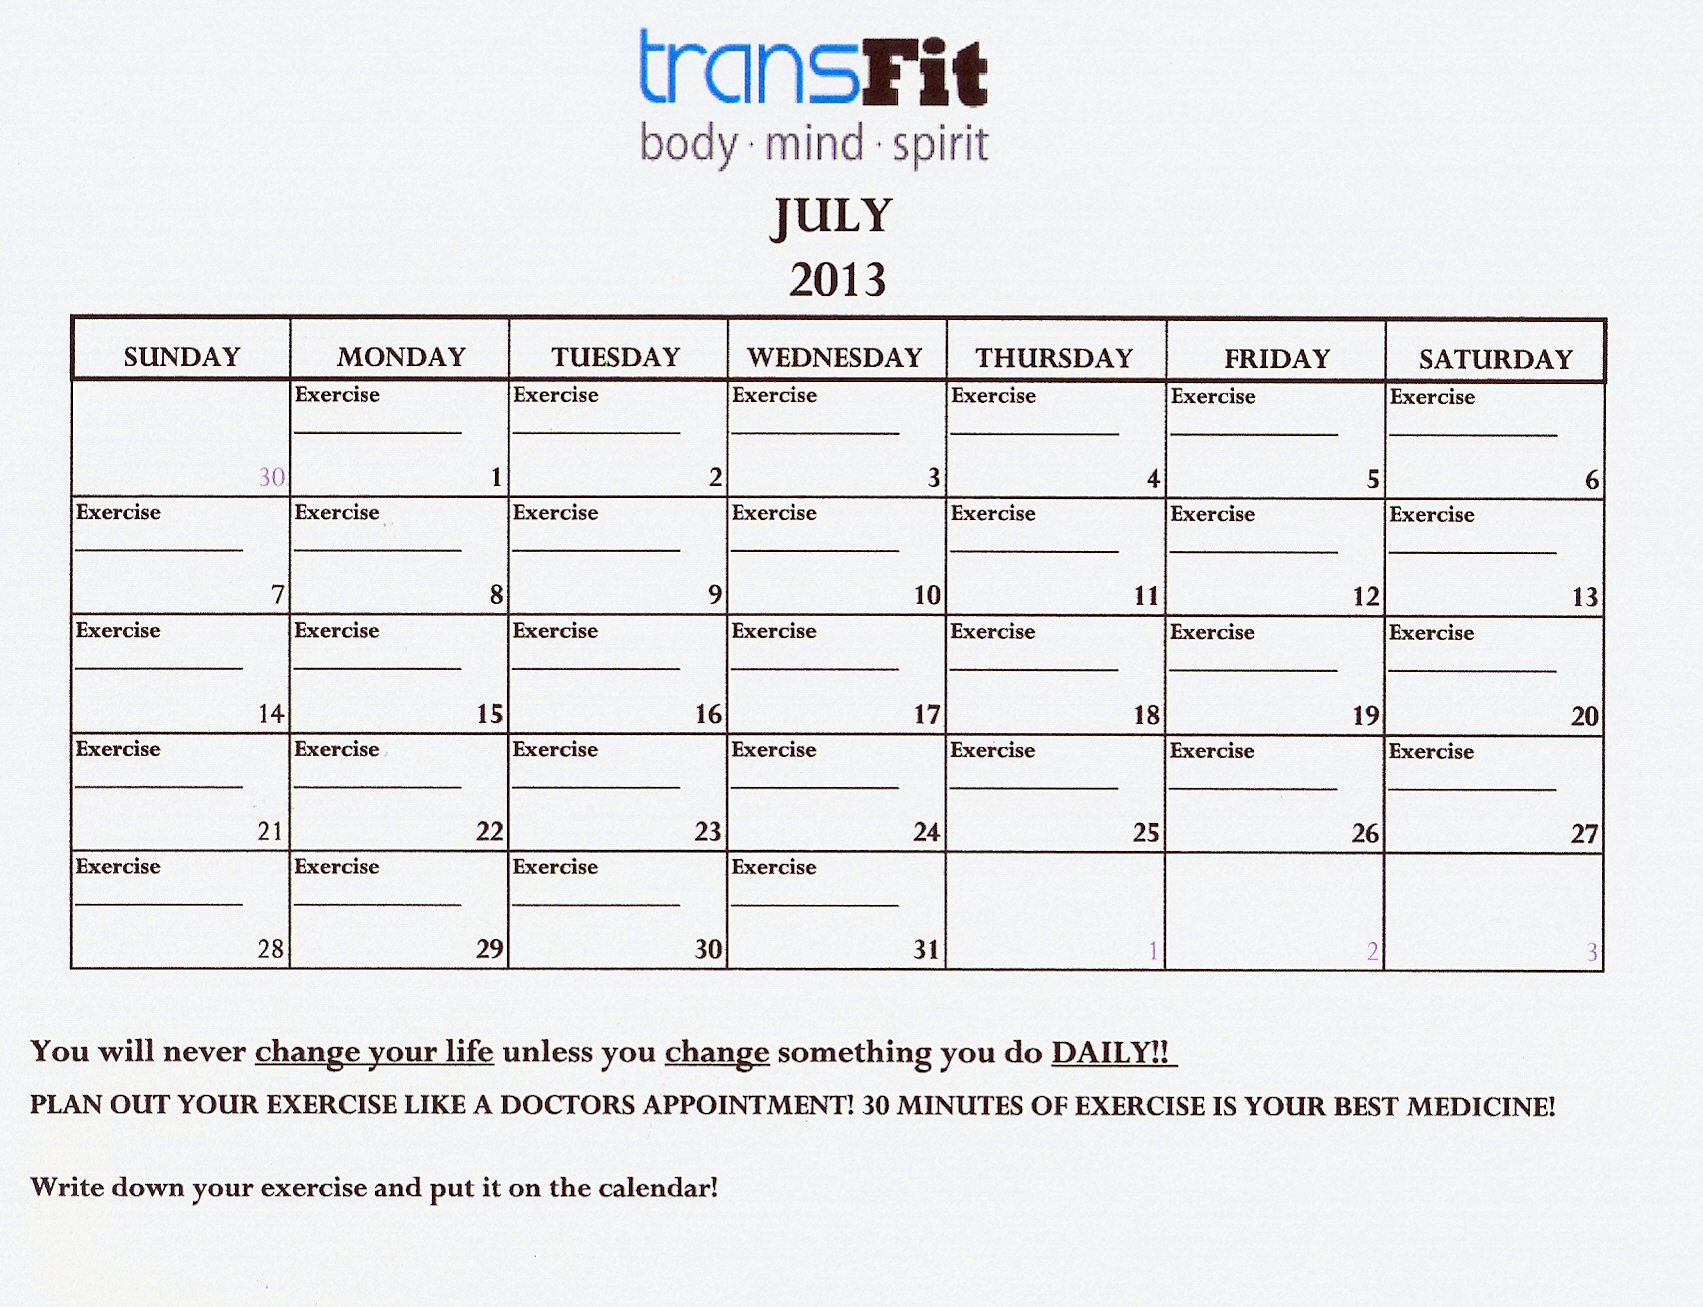 July 2013 Exercise Calendar